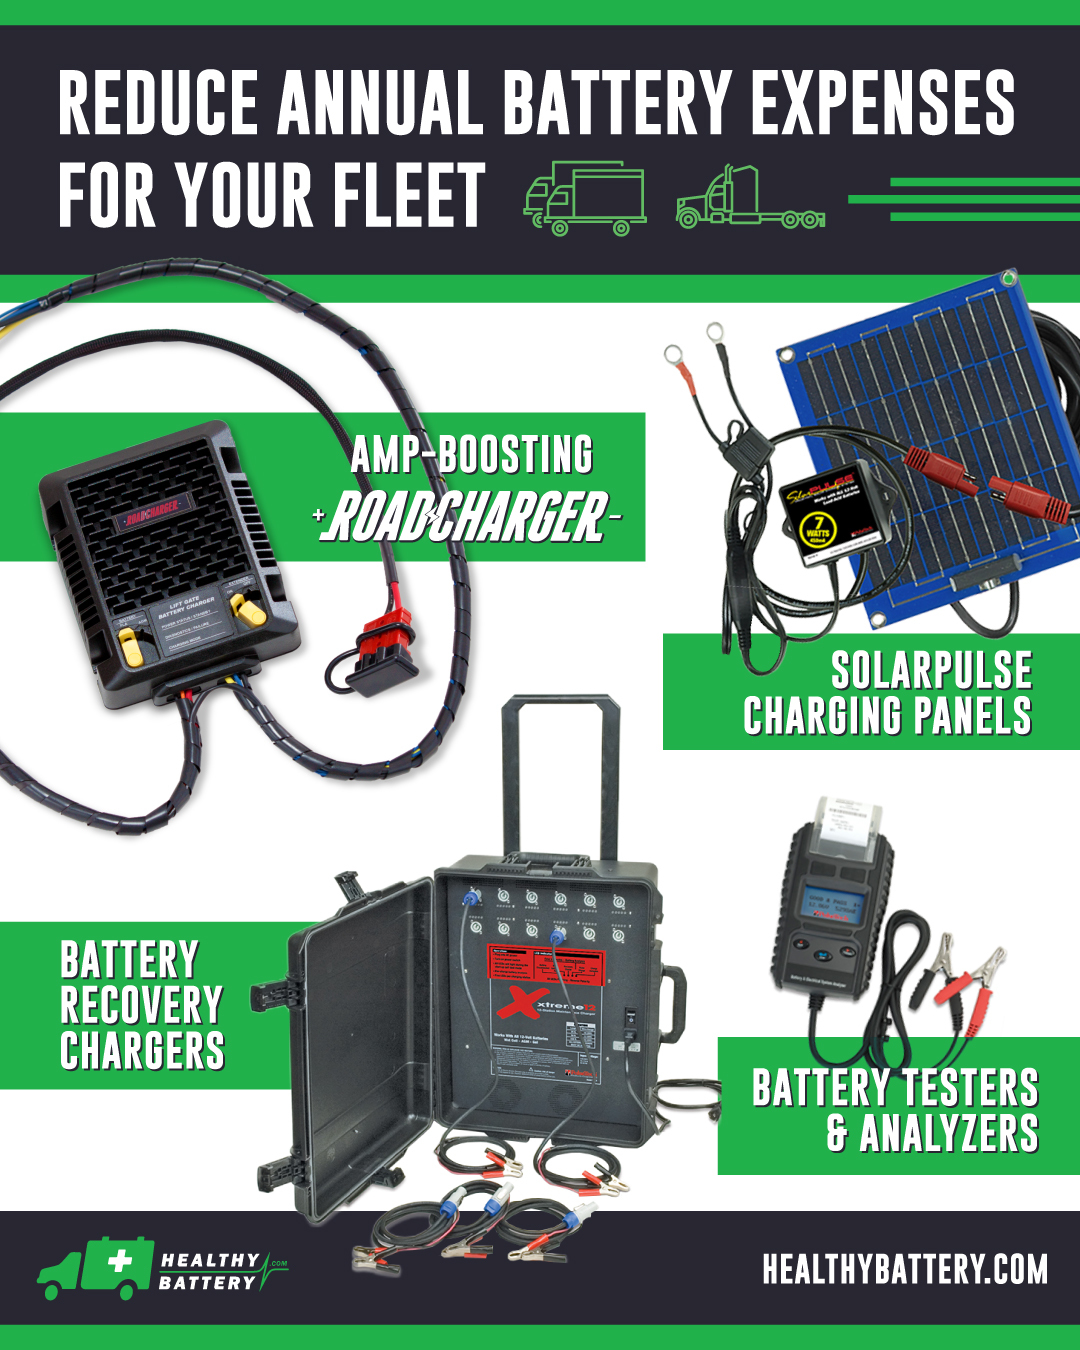 Healthy Battery offers energy saving products